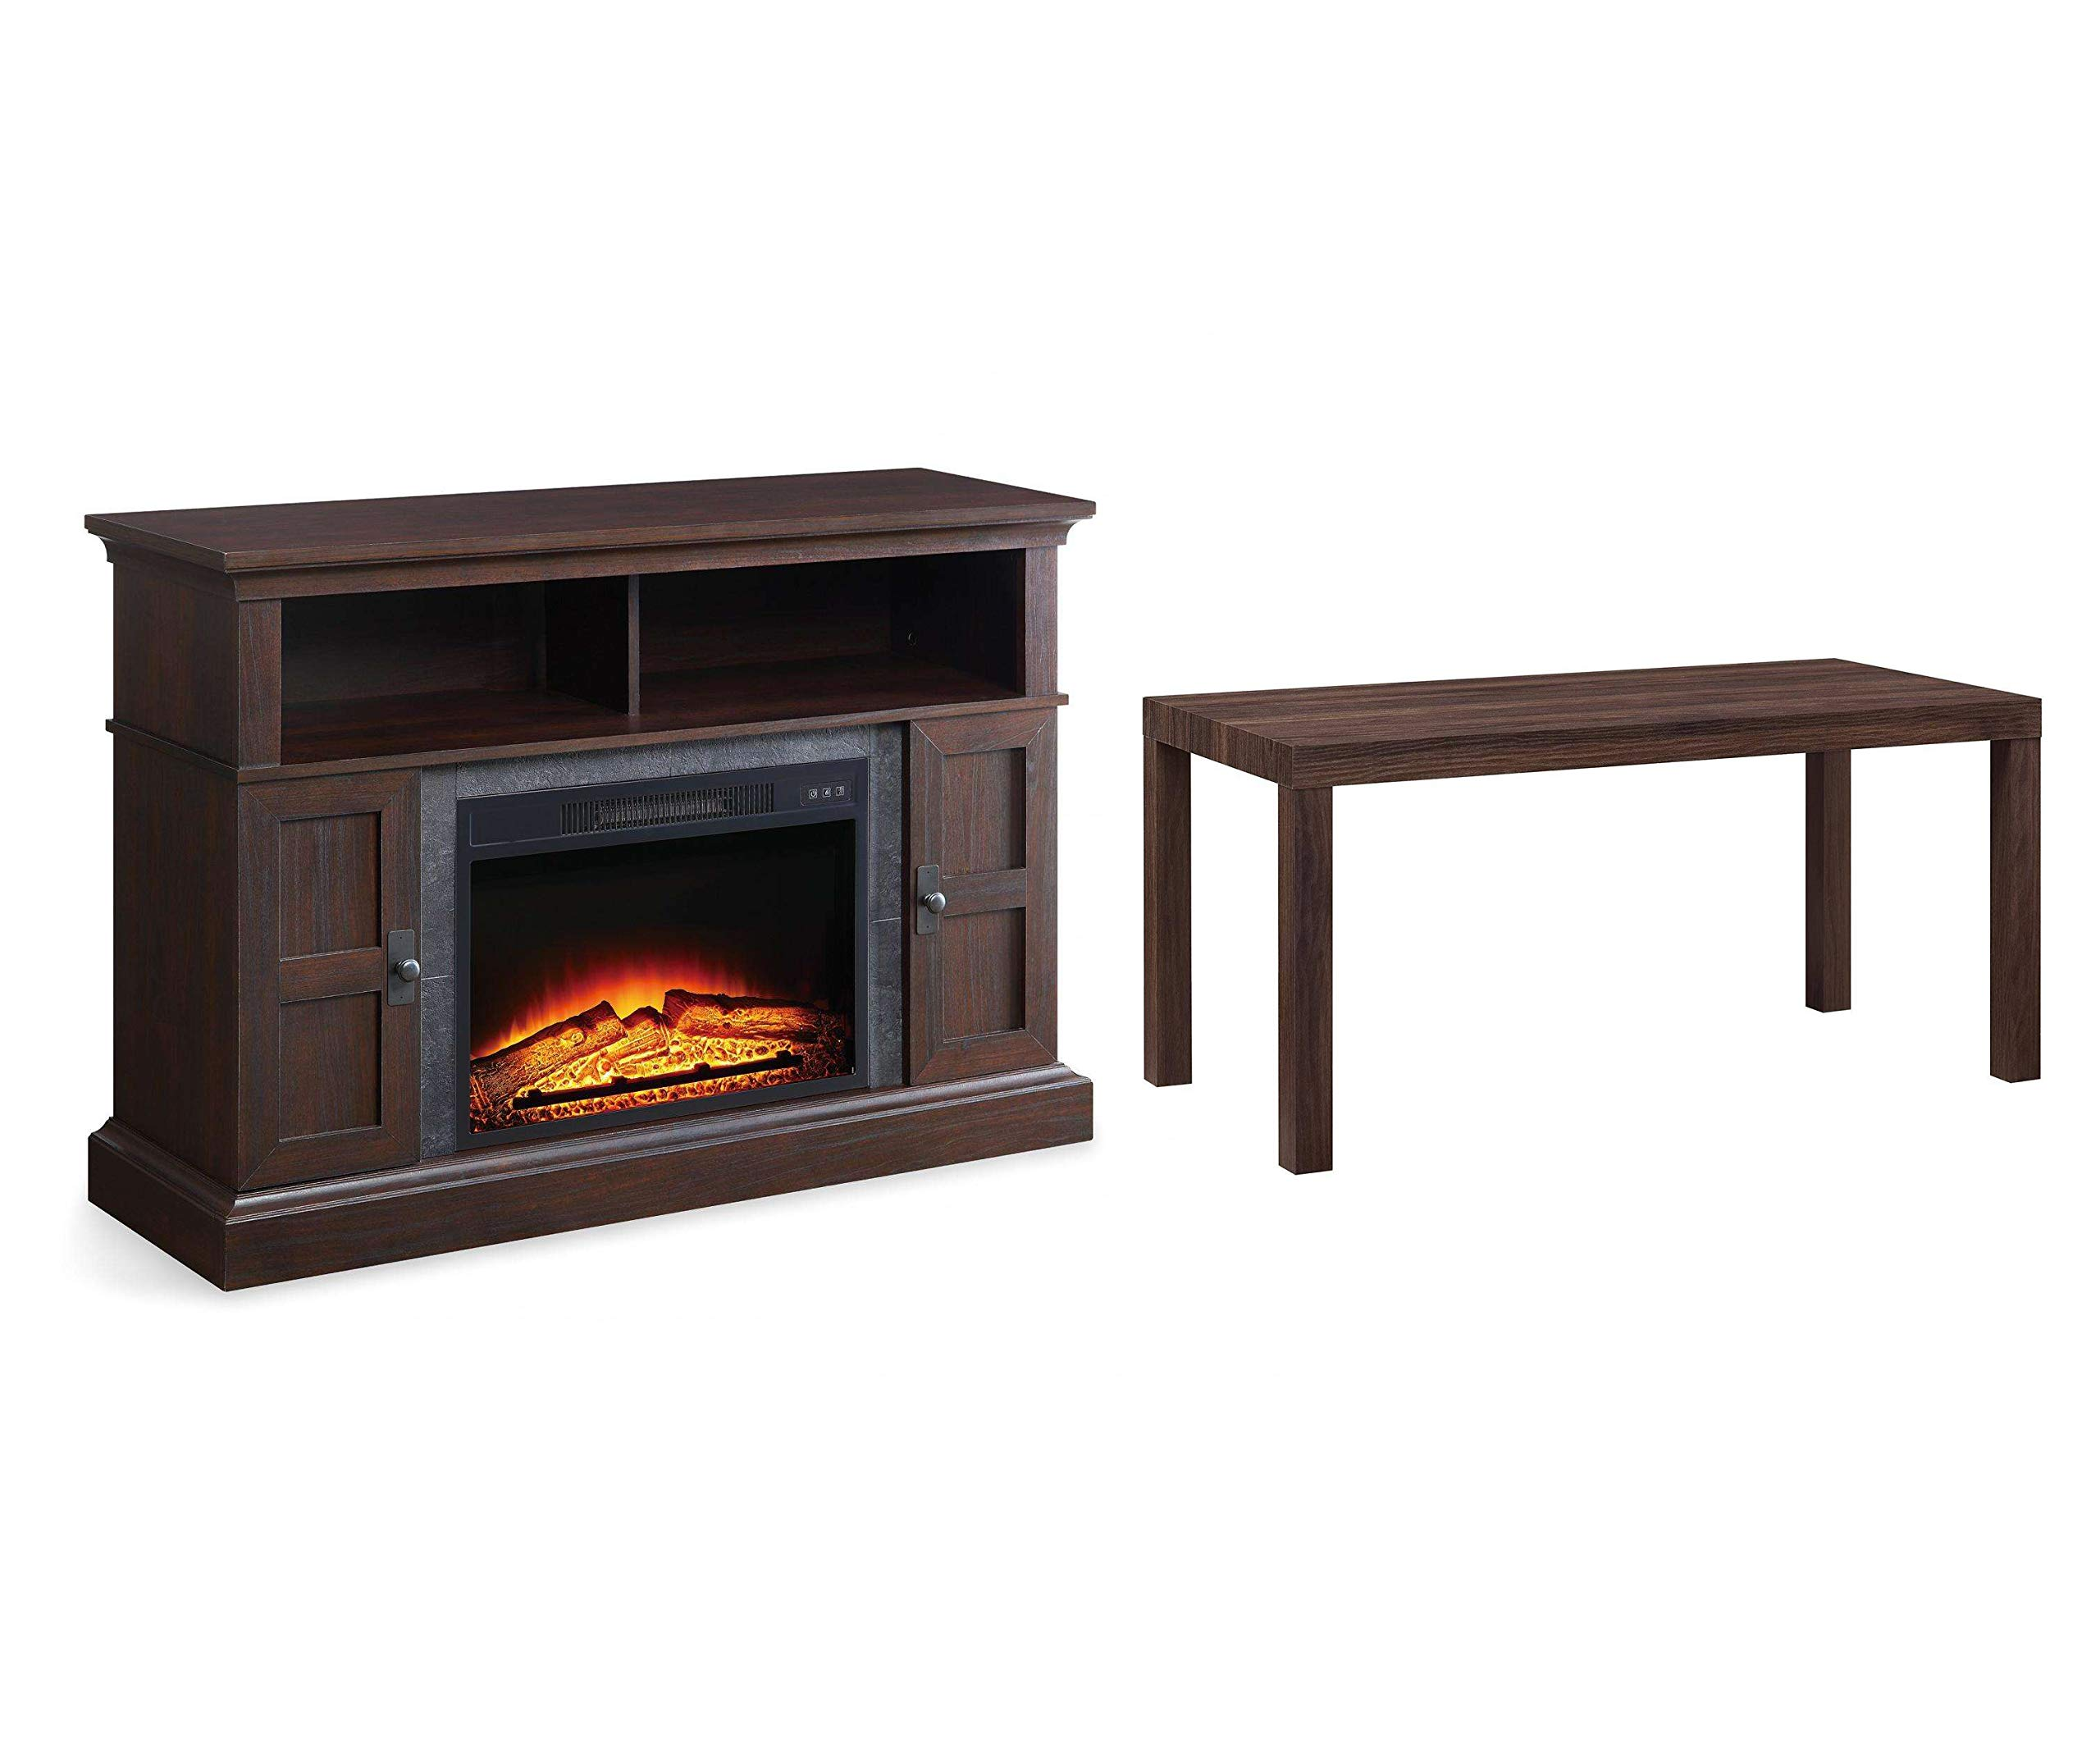 Whalen Furniture Media Fireplace and TV Console Combo, Cherry Bundle with Mainstays Parsons Coffee Table, Lightweight, Canyon Walnut by Whalen Furniture + Mainstays